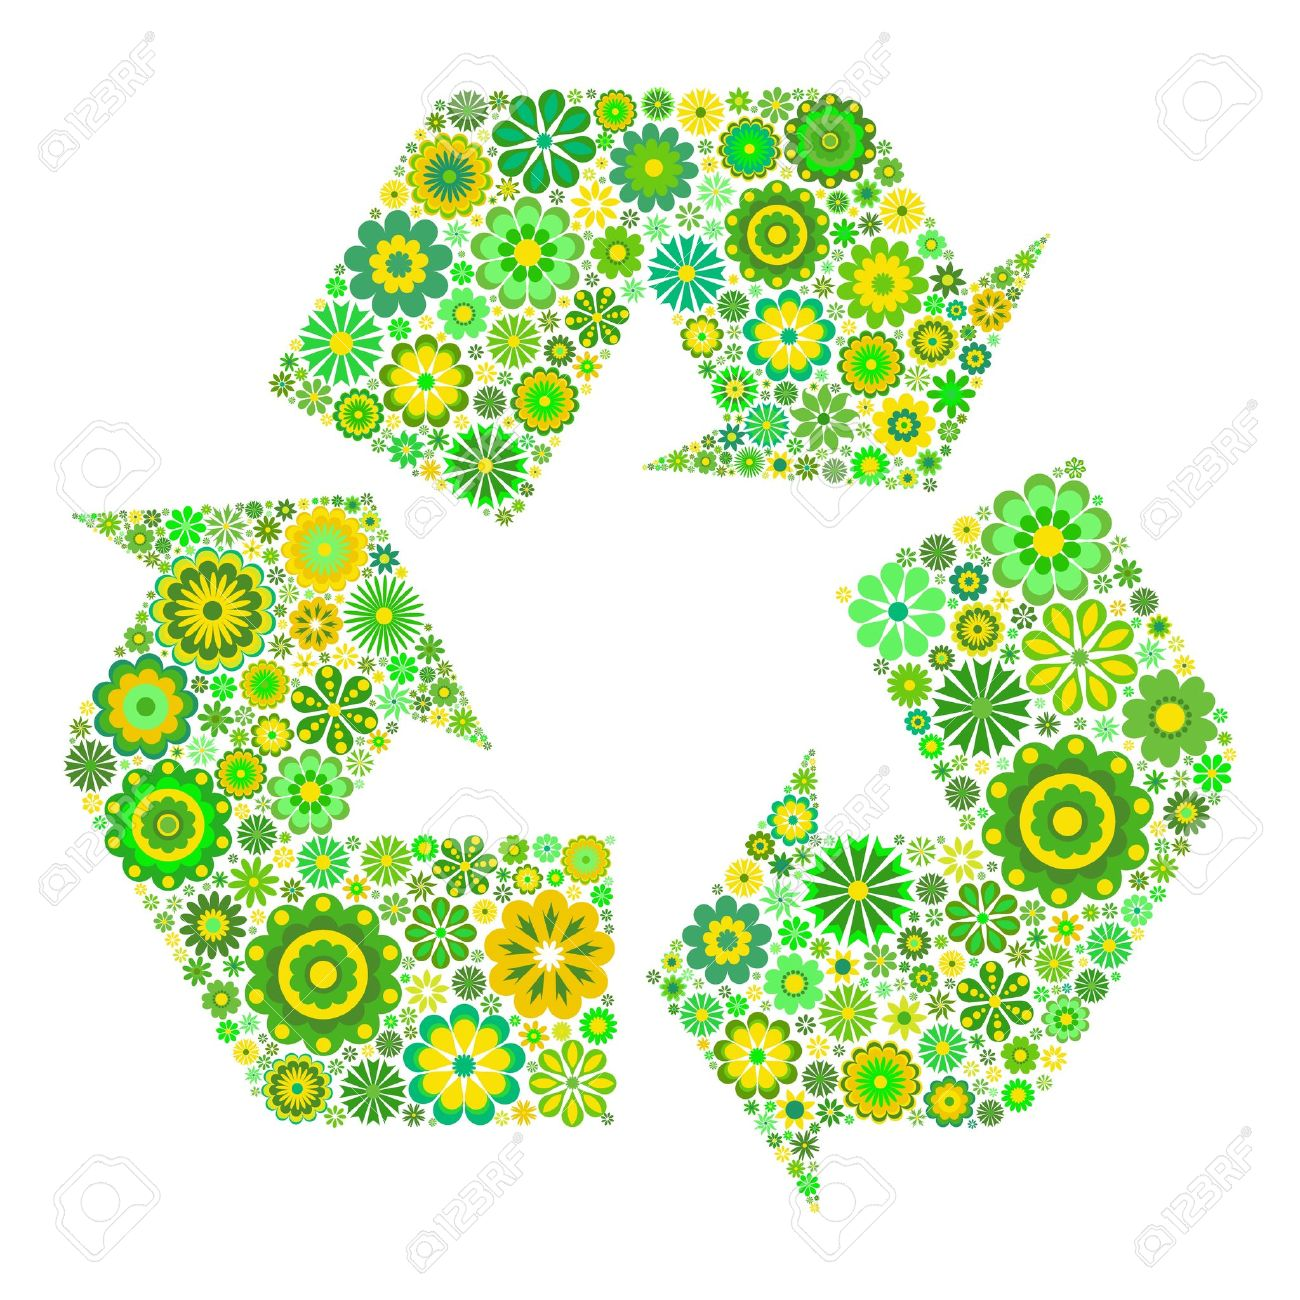 Flowery recycling symbol isolated on white background Stock Vector - 13172254